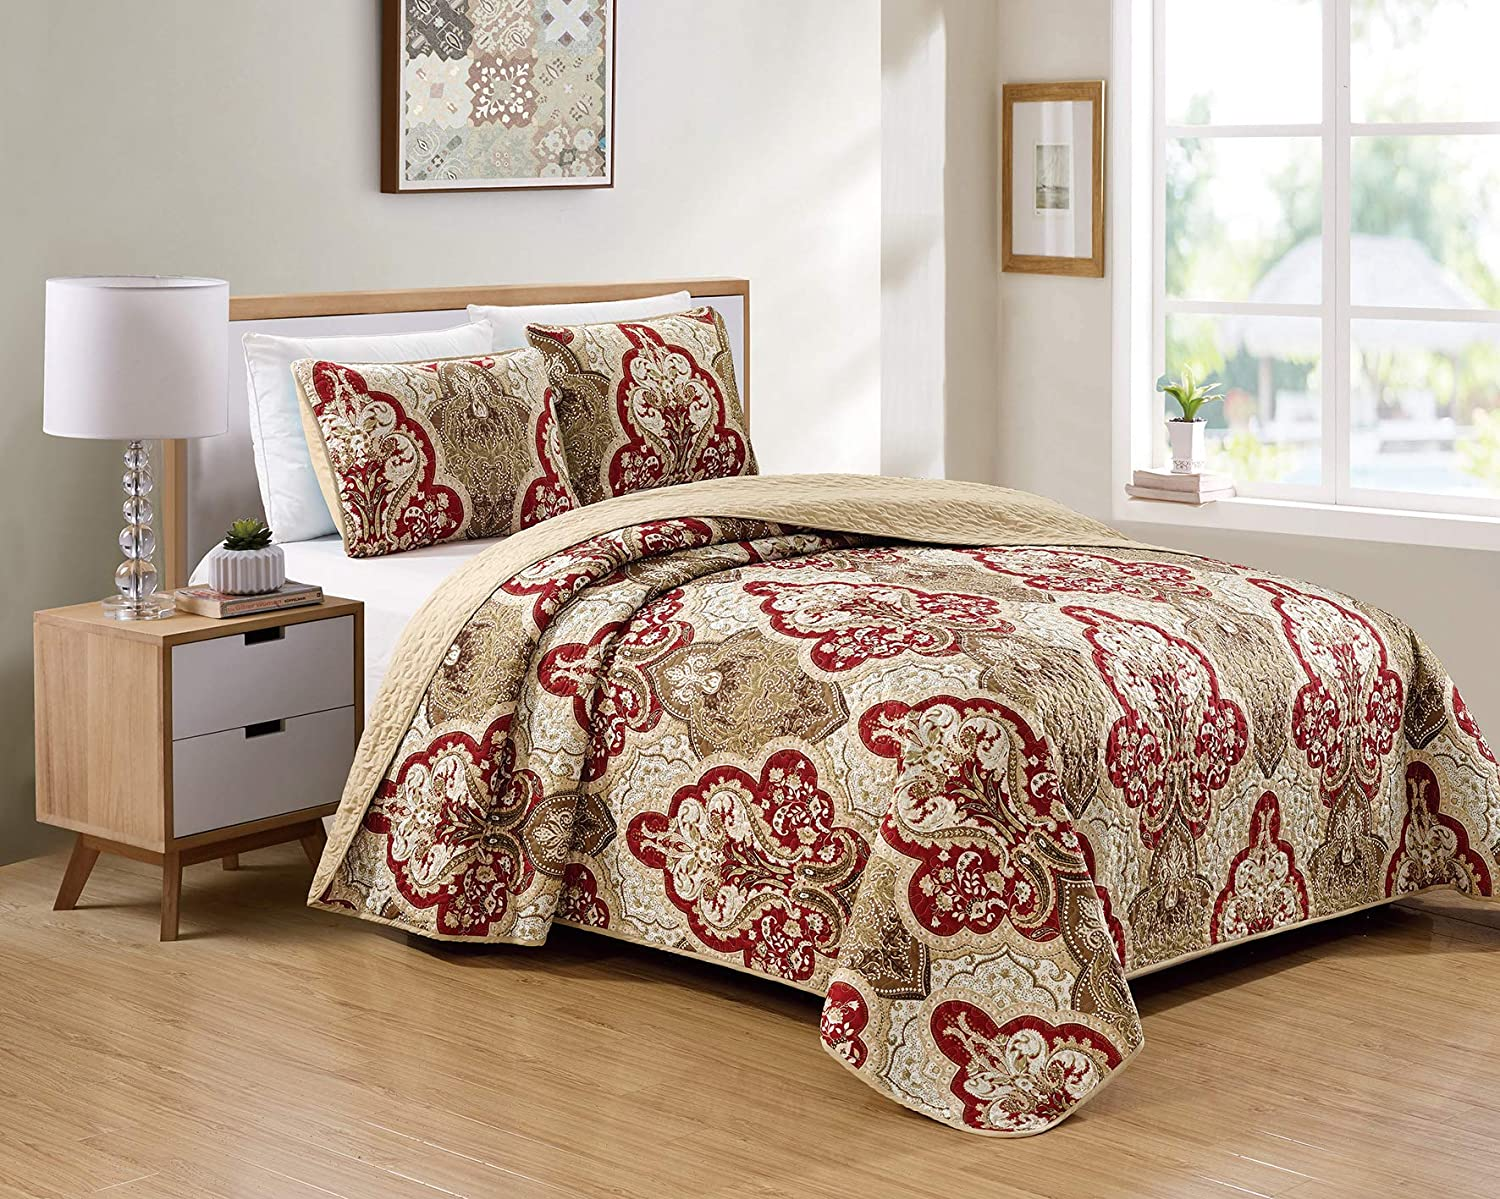 Better Home Style 3 Piece Luxury Lush Soft Taupe Burgundy Motif Ornamental Floral Printed Design Quilt Coverlet Bedspread Oversized Bed Cover Set # 3562 (Taupe, Full/Queen)